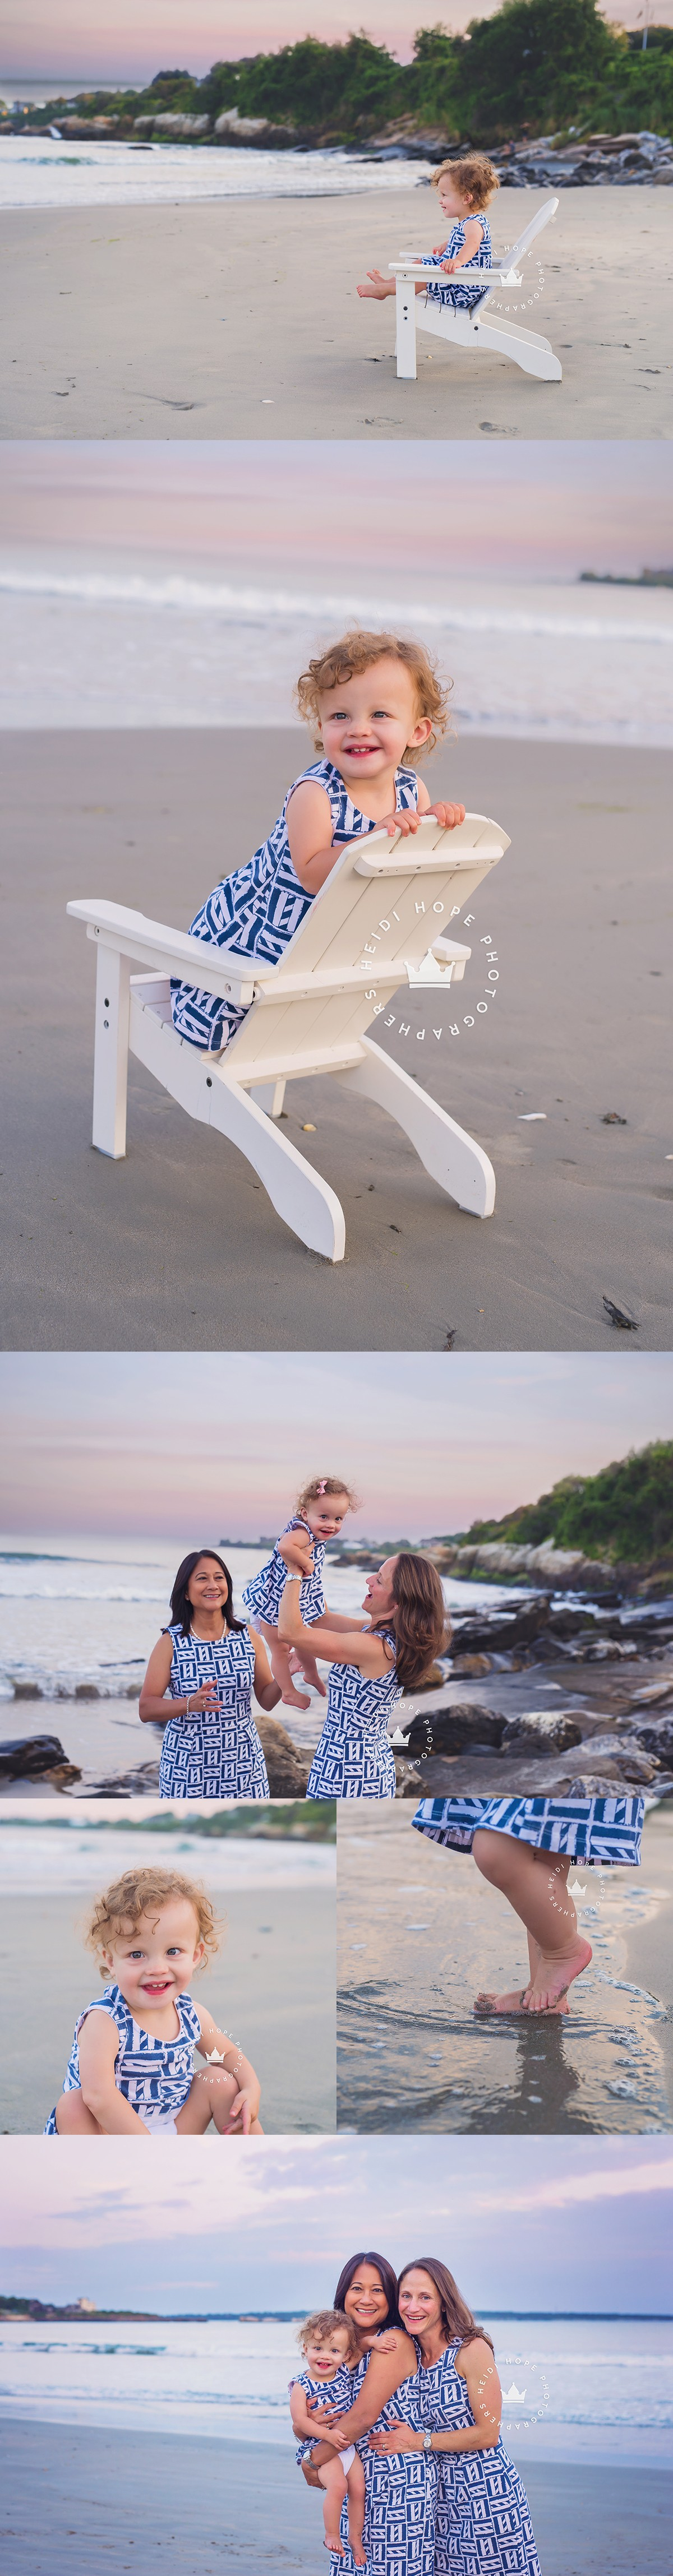 heidi hope rhode island family photographer